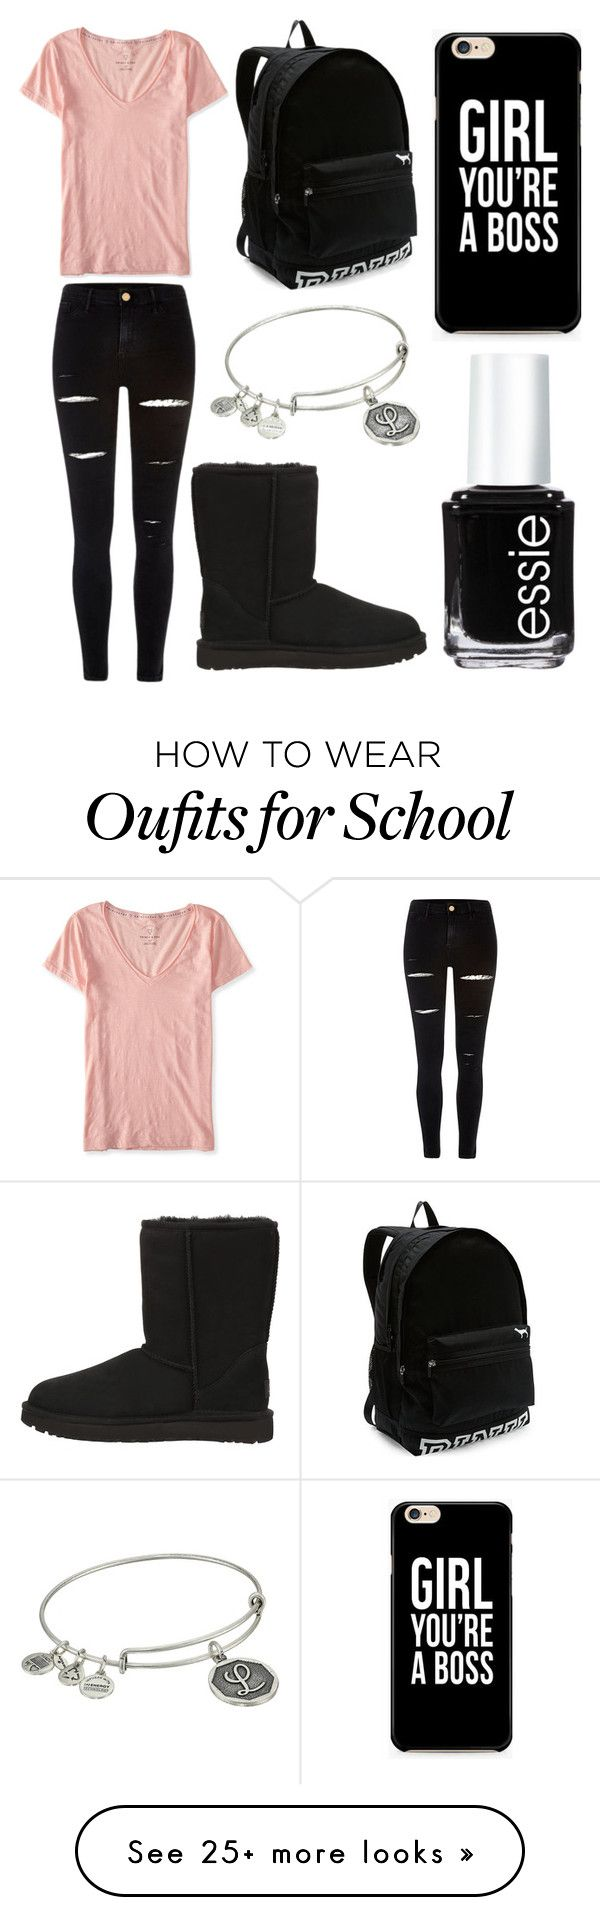 """Chill School Day"" by lfrye2080 on Polyvore featuring Aéropostale, River Island, UGG Australia, Victoria's Secret, Alex and Ani and Essie"